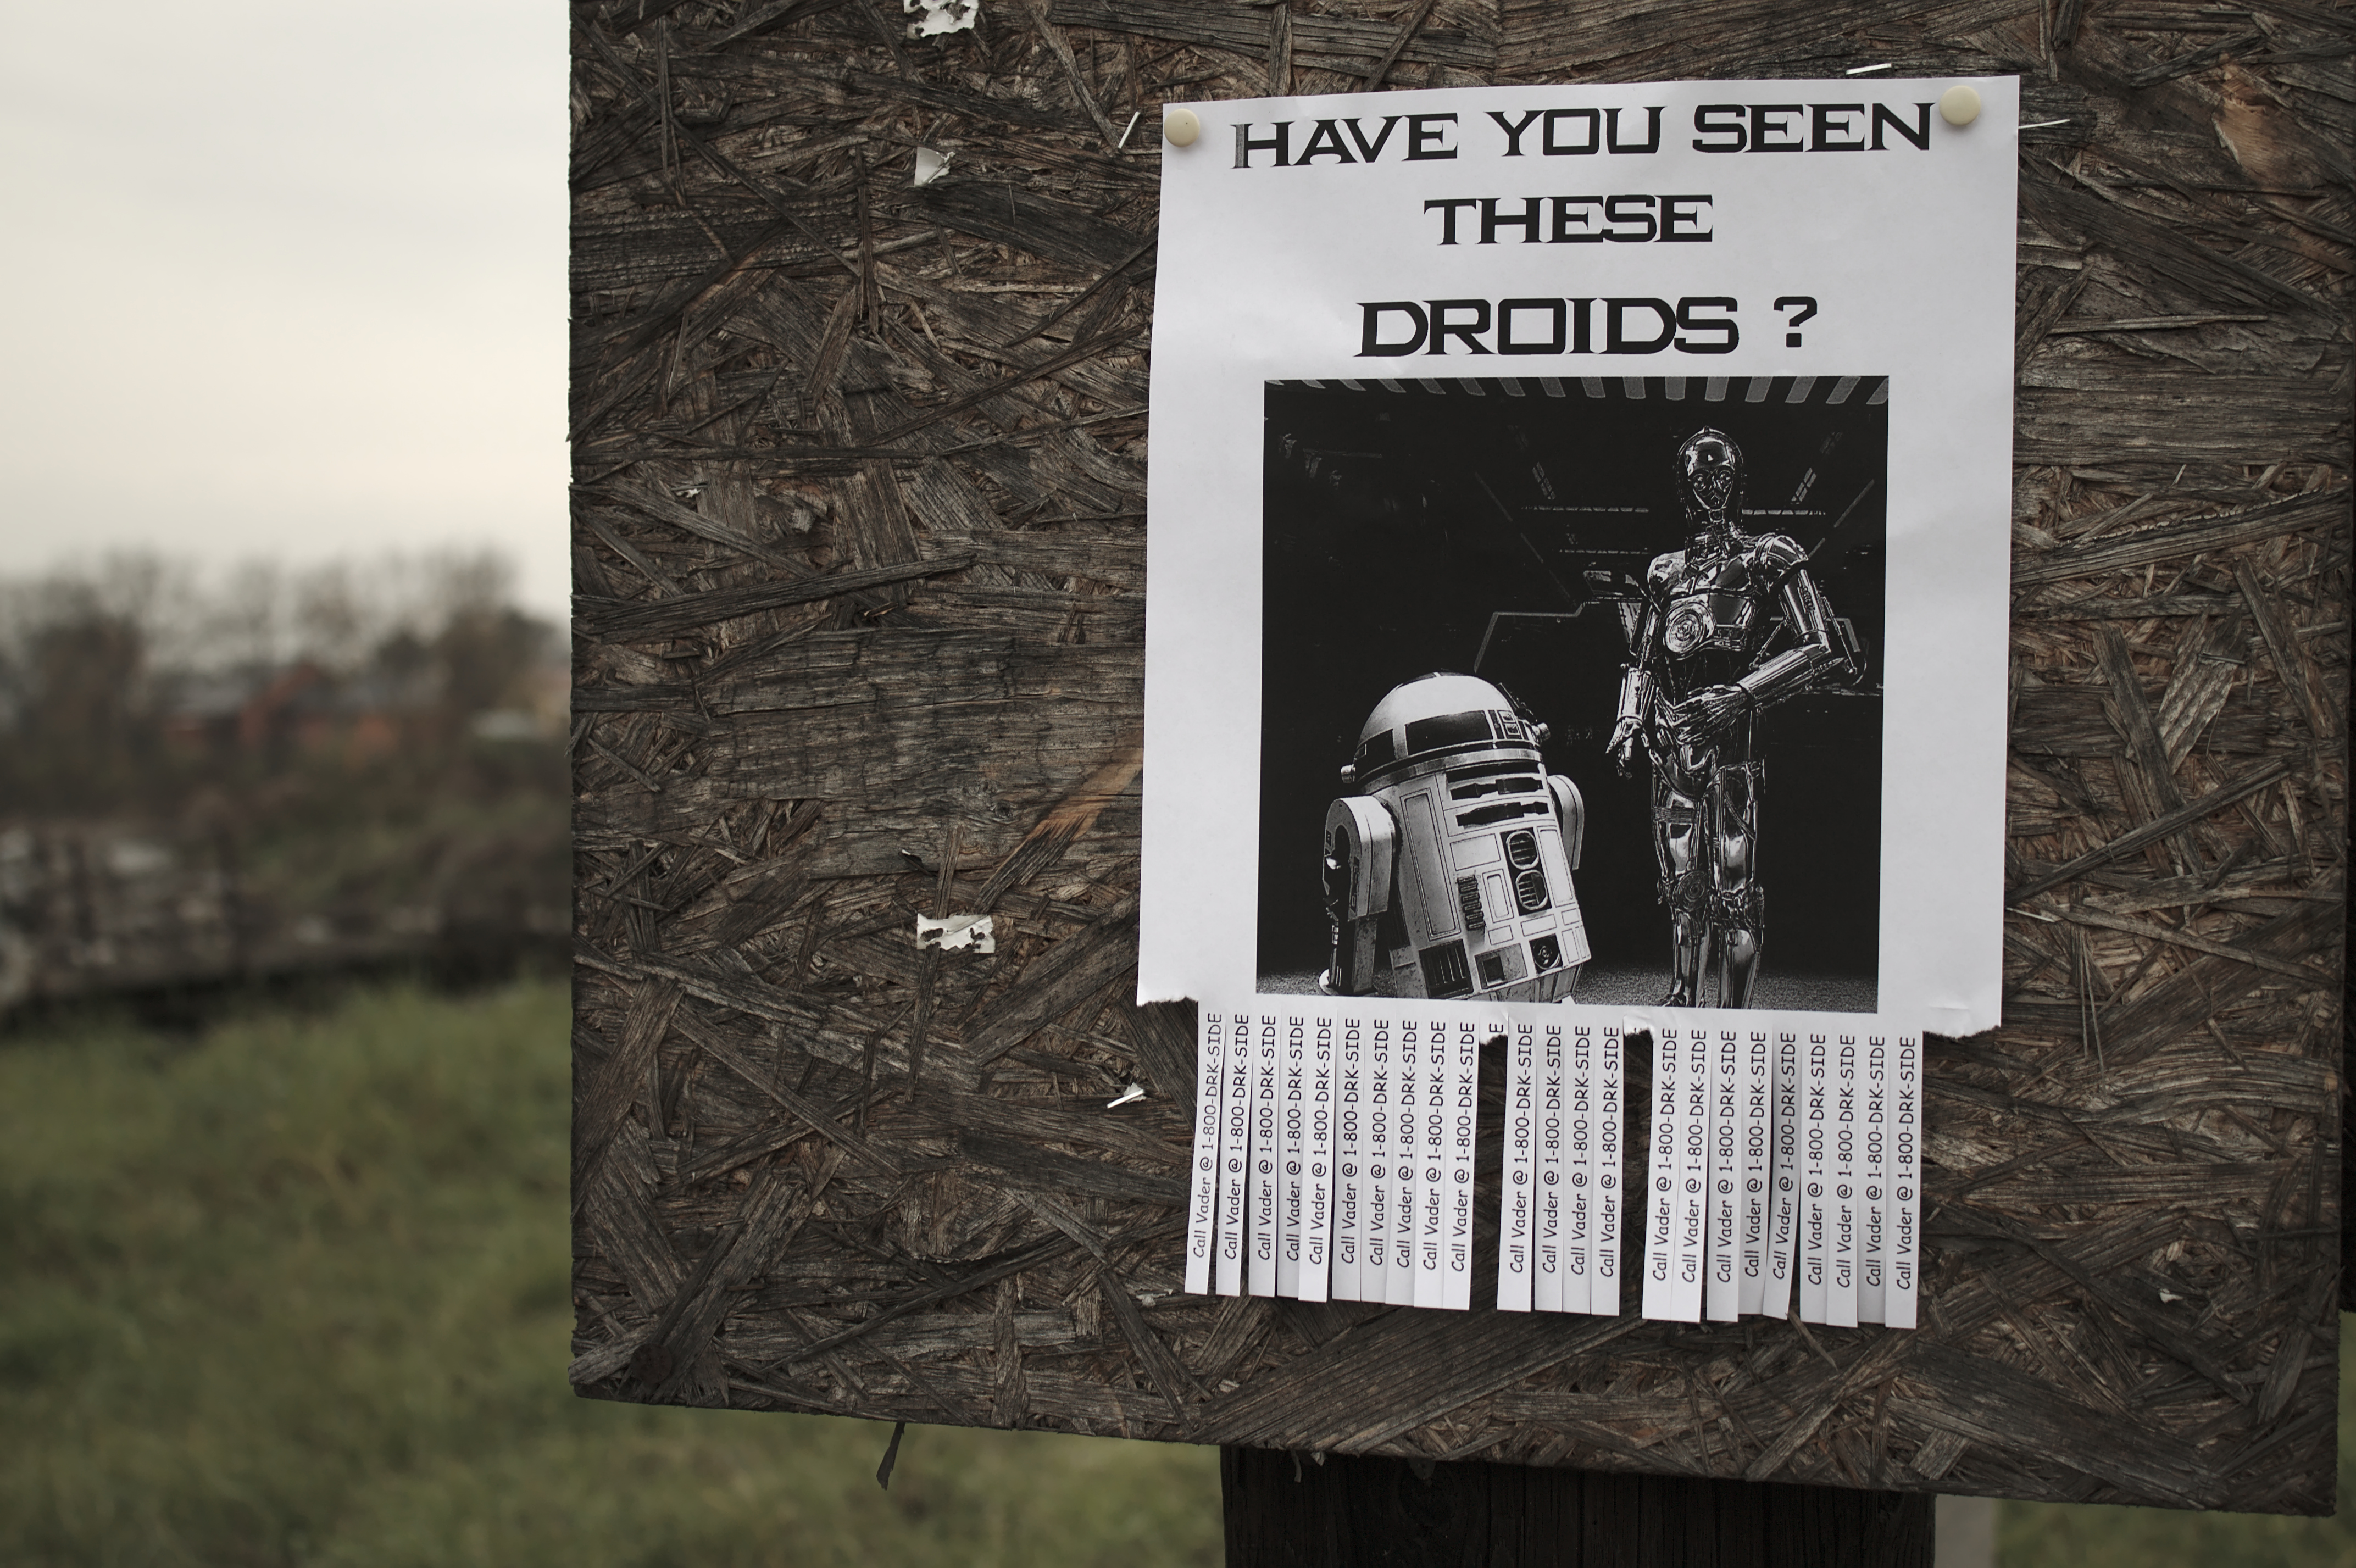 Have you seen the droids?